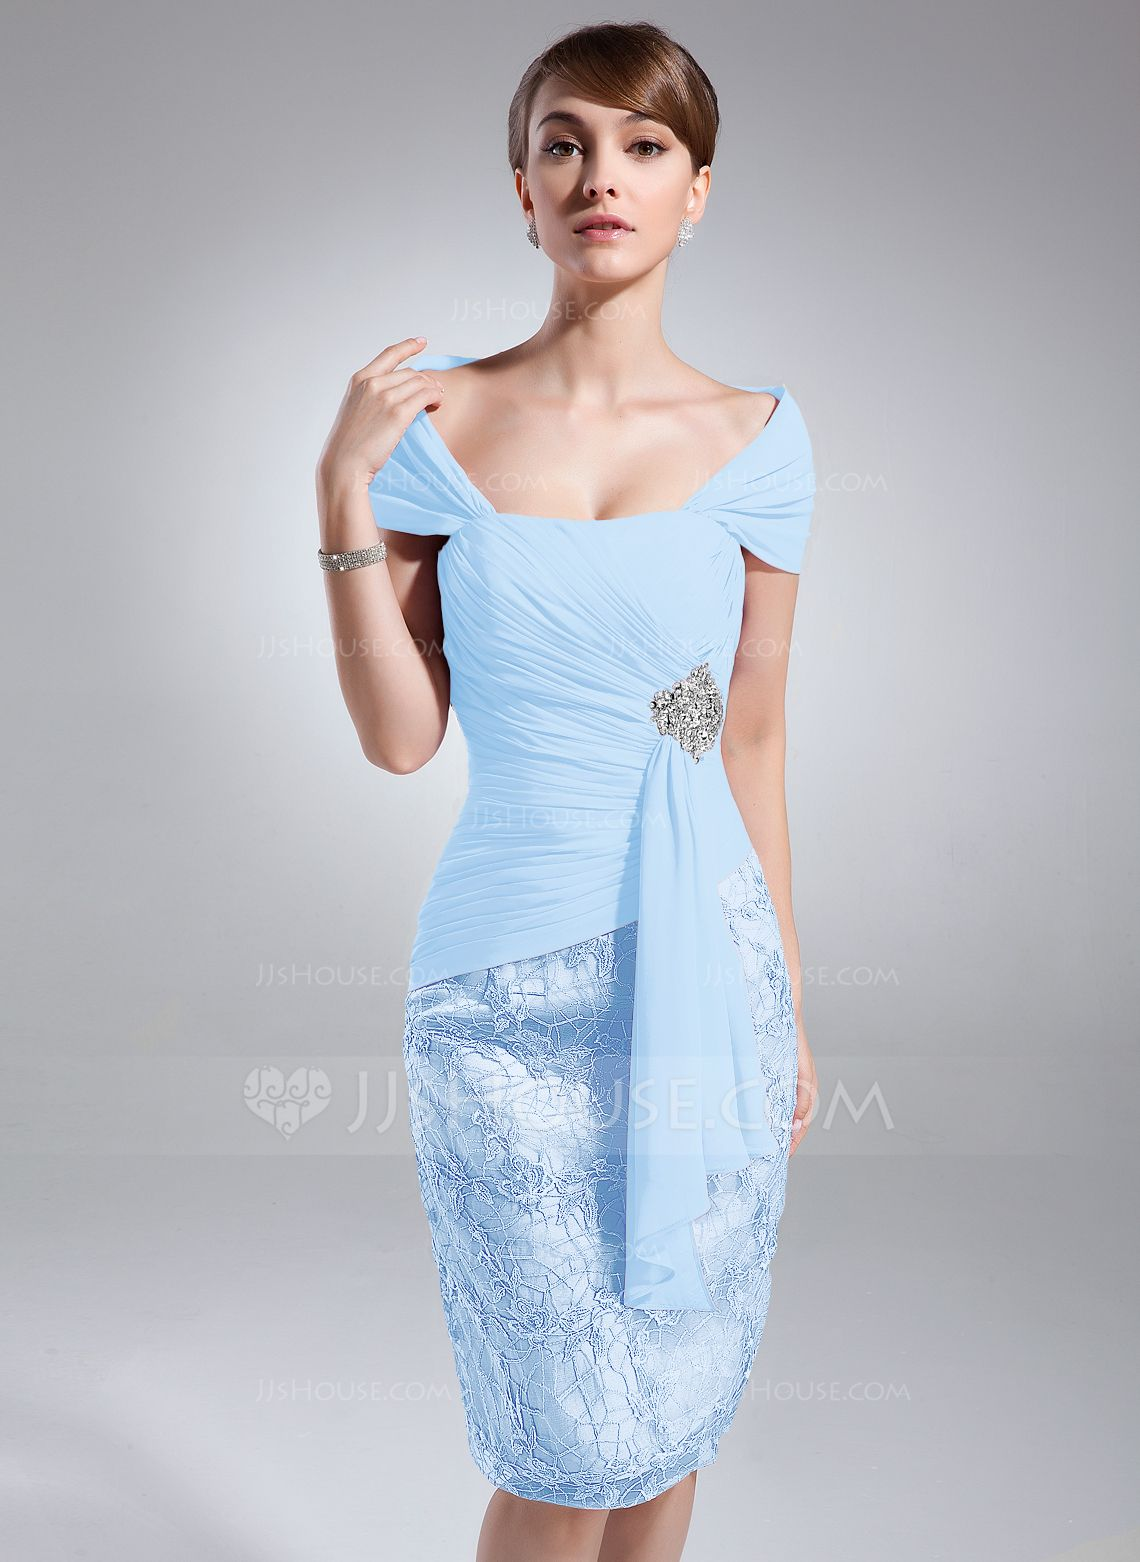 Fashion dress for wedding party  SheathColumn OfftheShoulder KneeLength Chiffon Lace Mother of